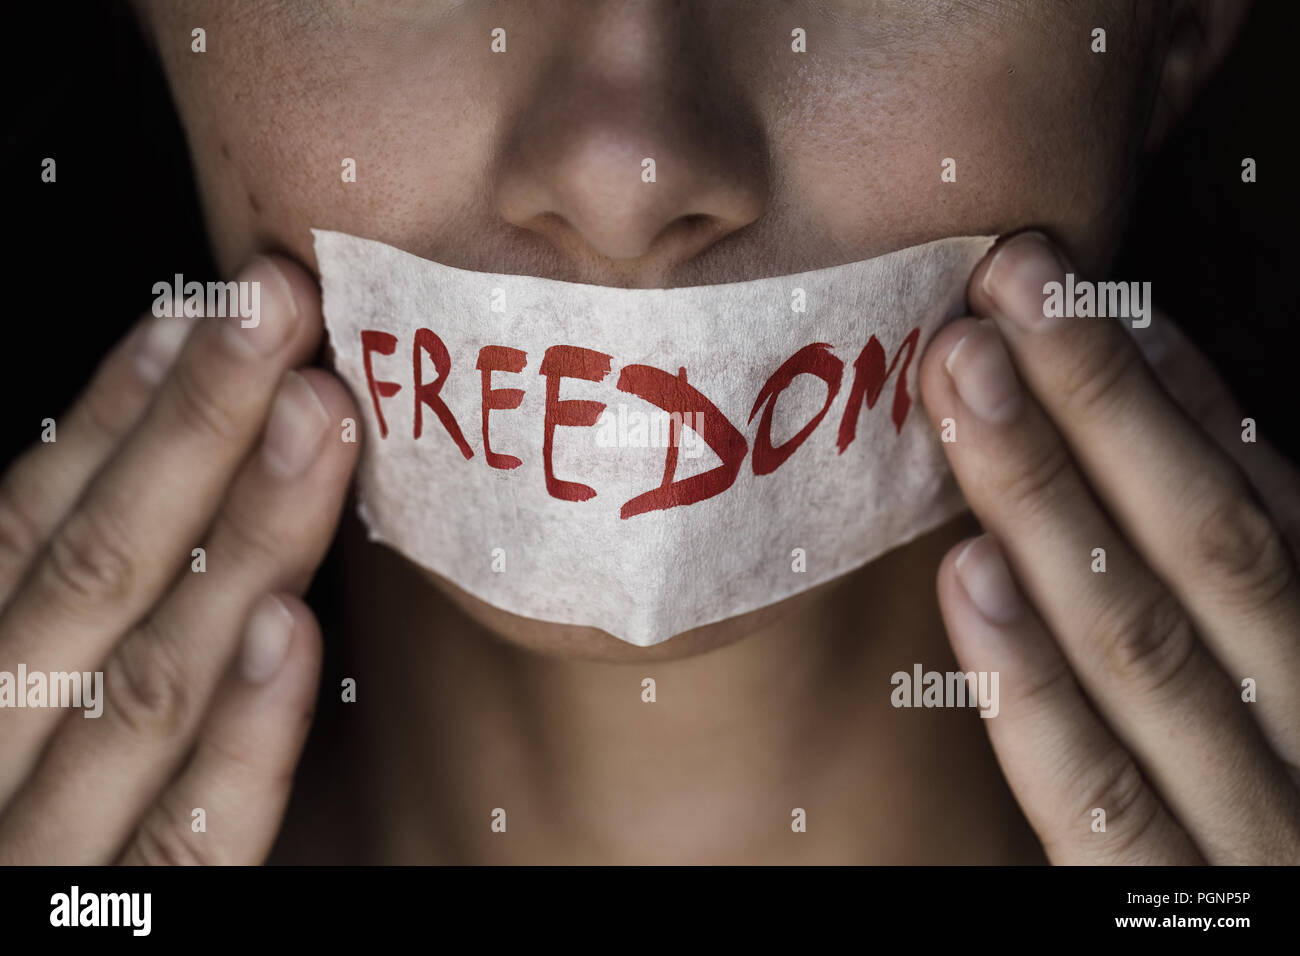 Concept on the topic of freedom of speech: the girl's face is sealed with scotch tape - Stock Image